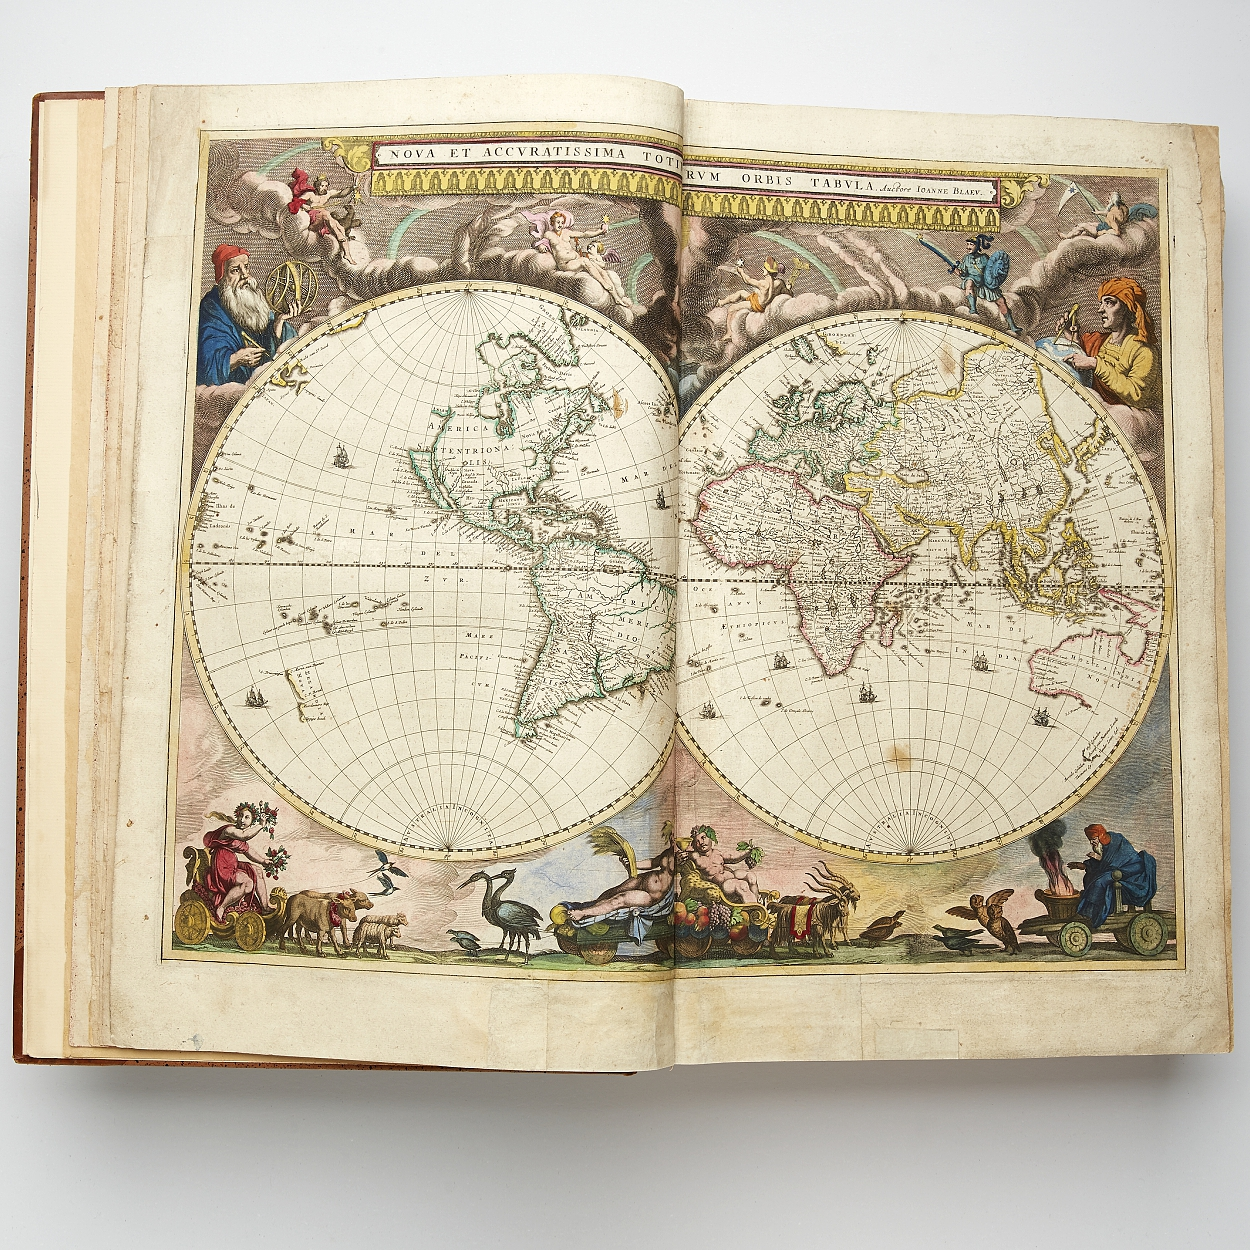 Blaeu's atlas Theatrum orbis first two parts 1640